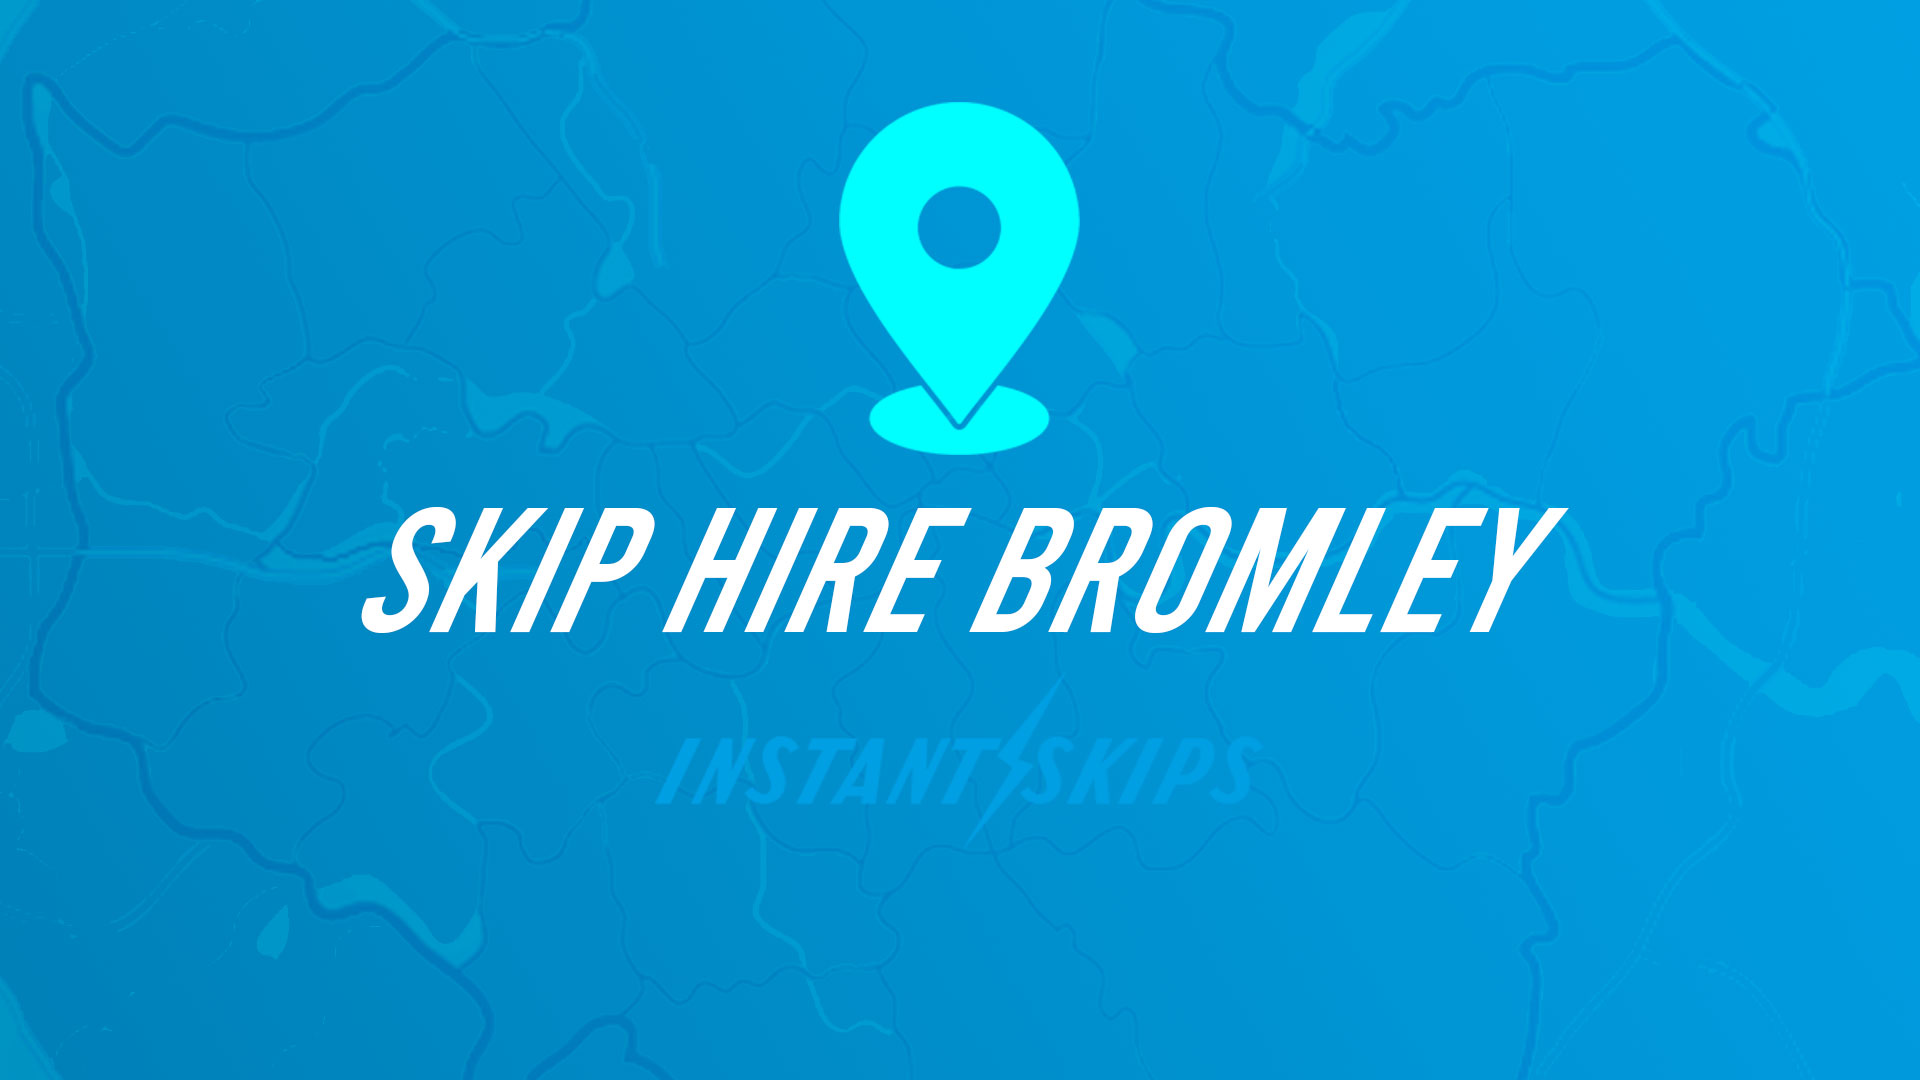 skip hire bromley post thumbnail